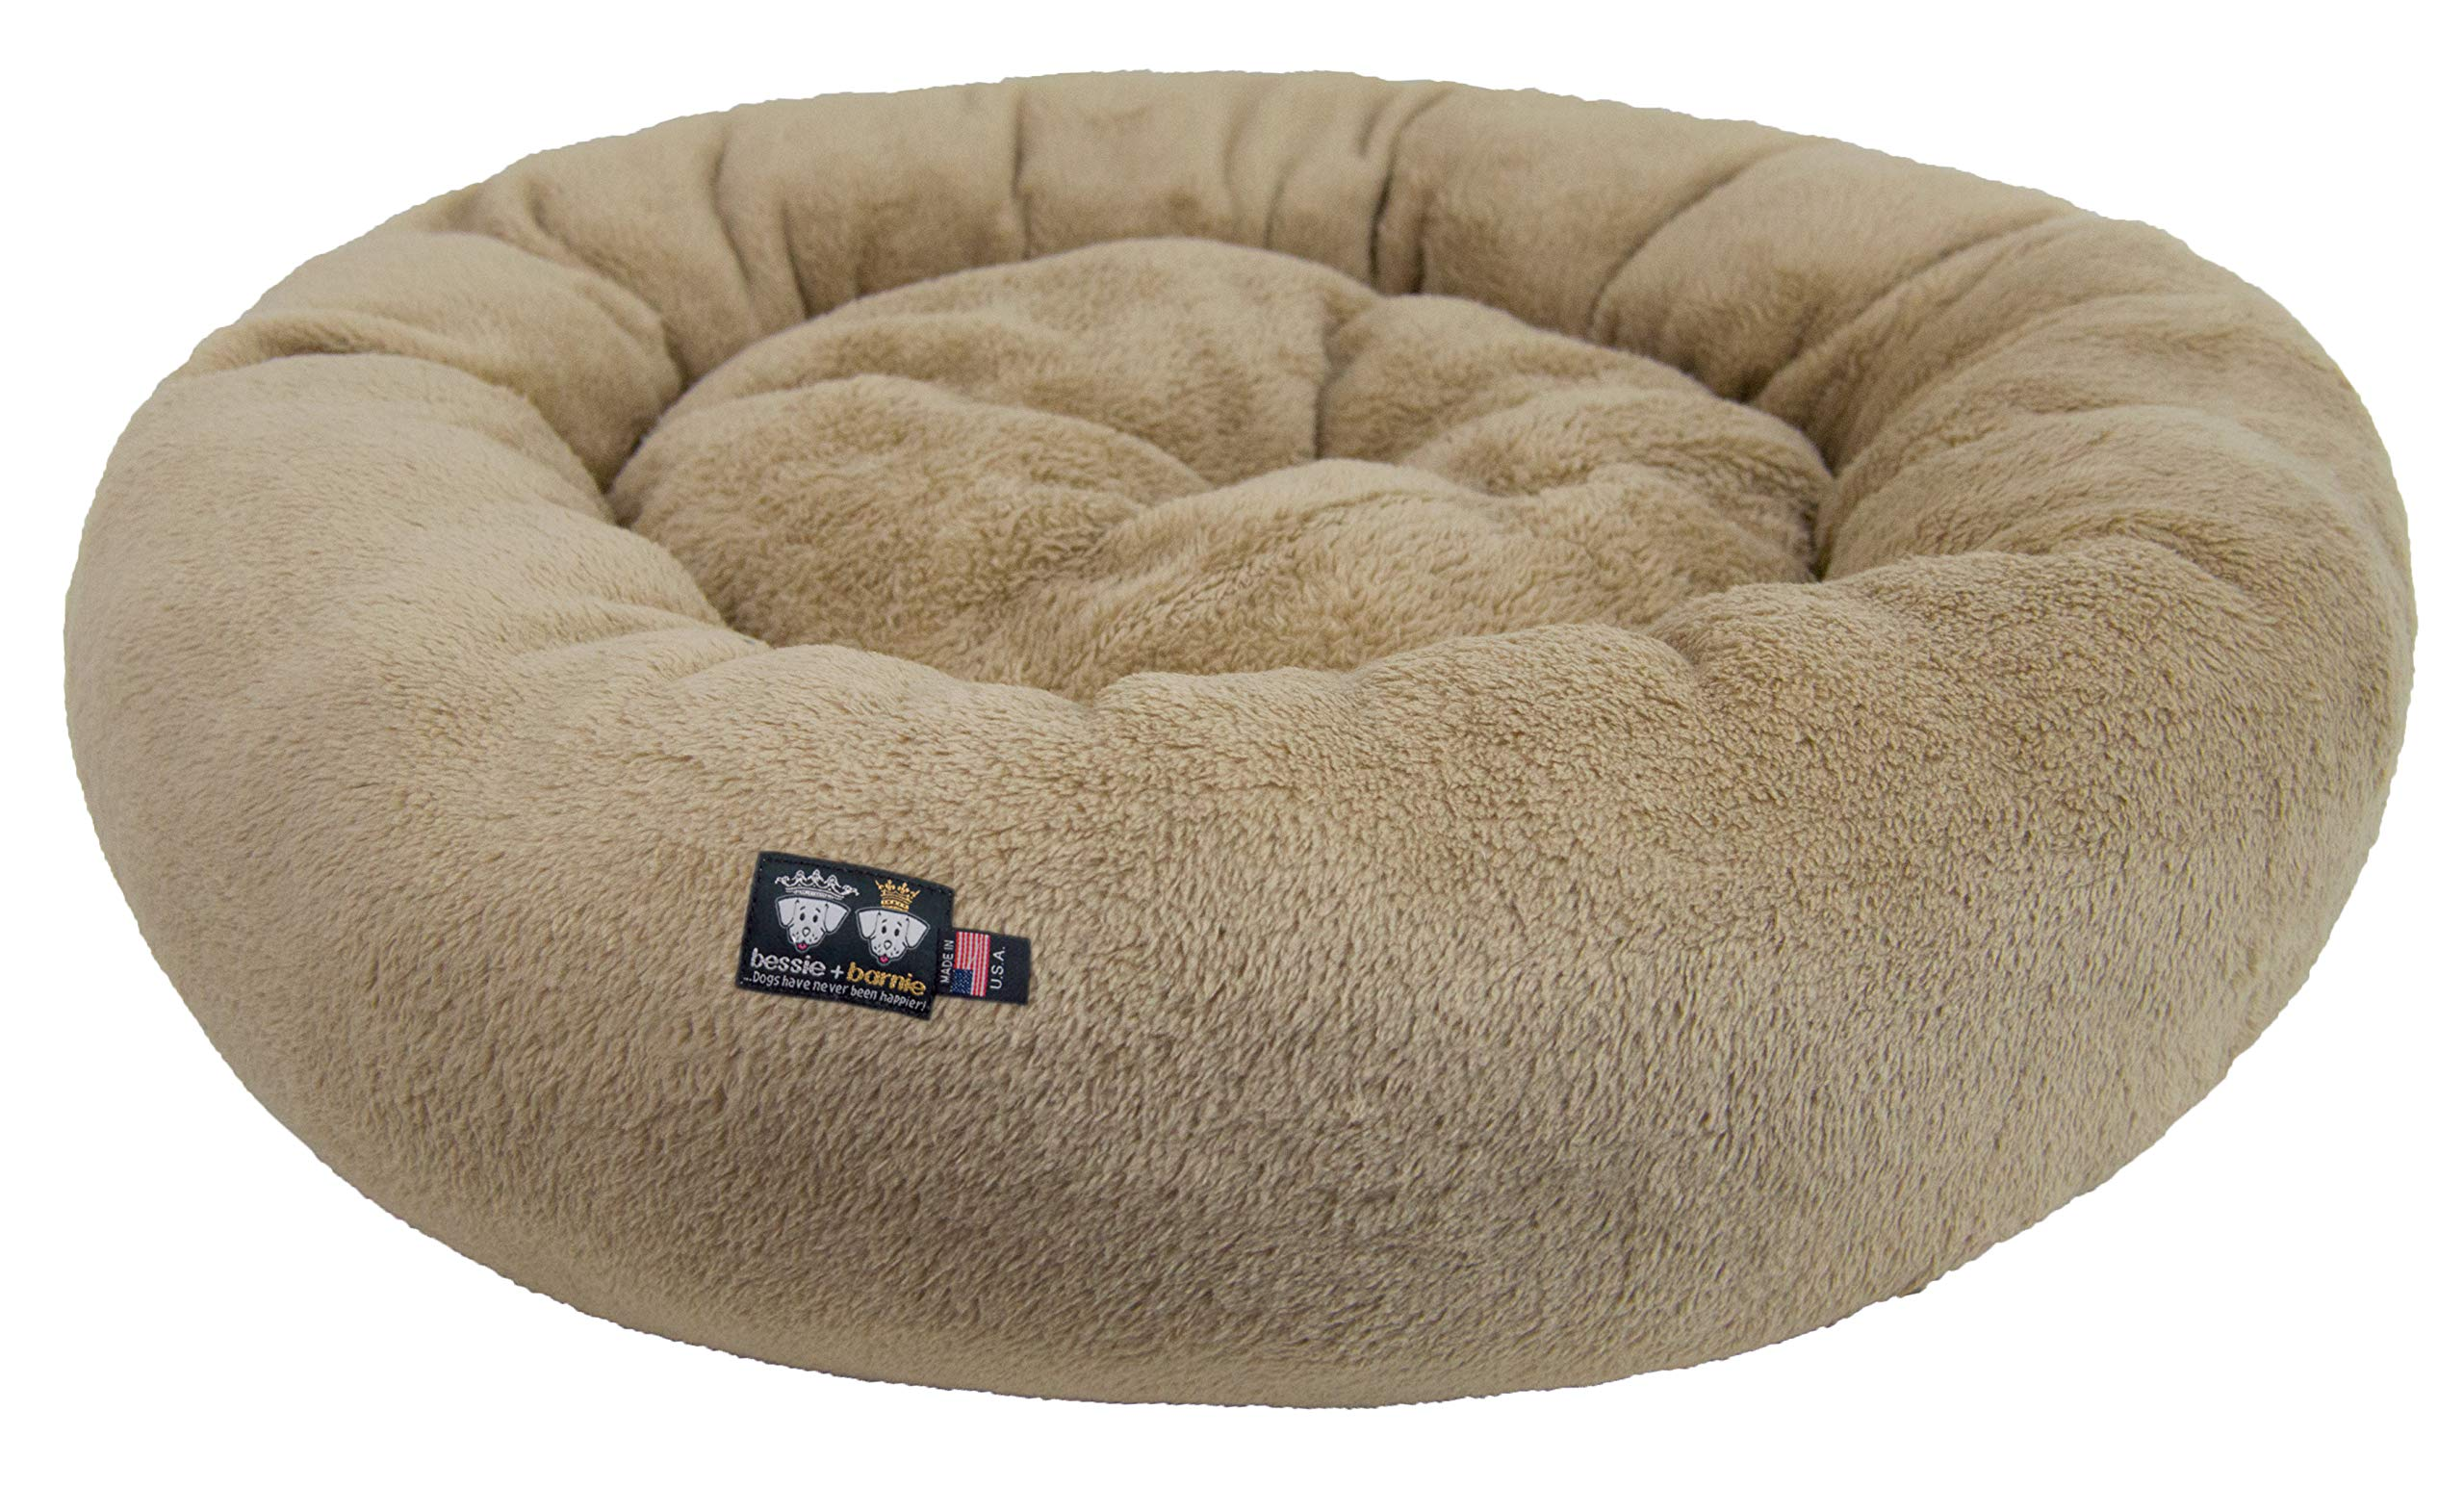 BESSIE AND BARNIE Ultra Plush Deluxe Comfort Pet Dog & Cat Taupe Snuggle Bed (Multiple Sizes) - Machine Washable, Made in The USA, Reversible, Durable Soft Fabrics by BESSIE AND BARNIE